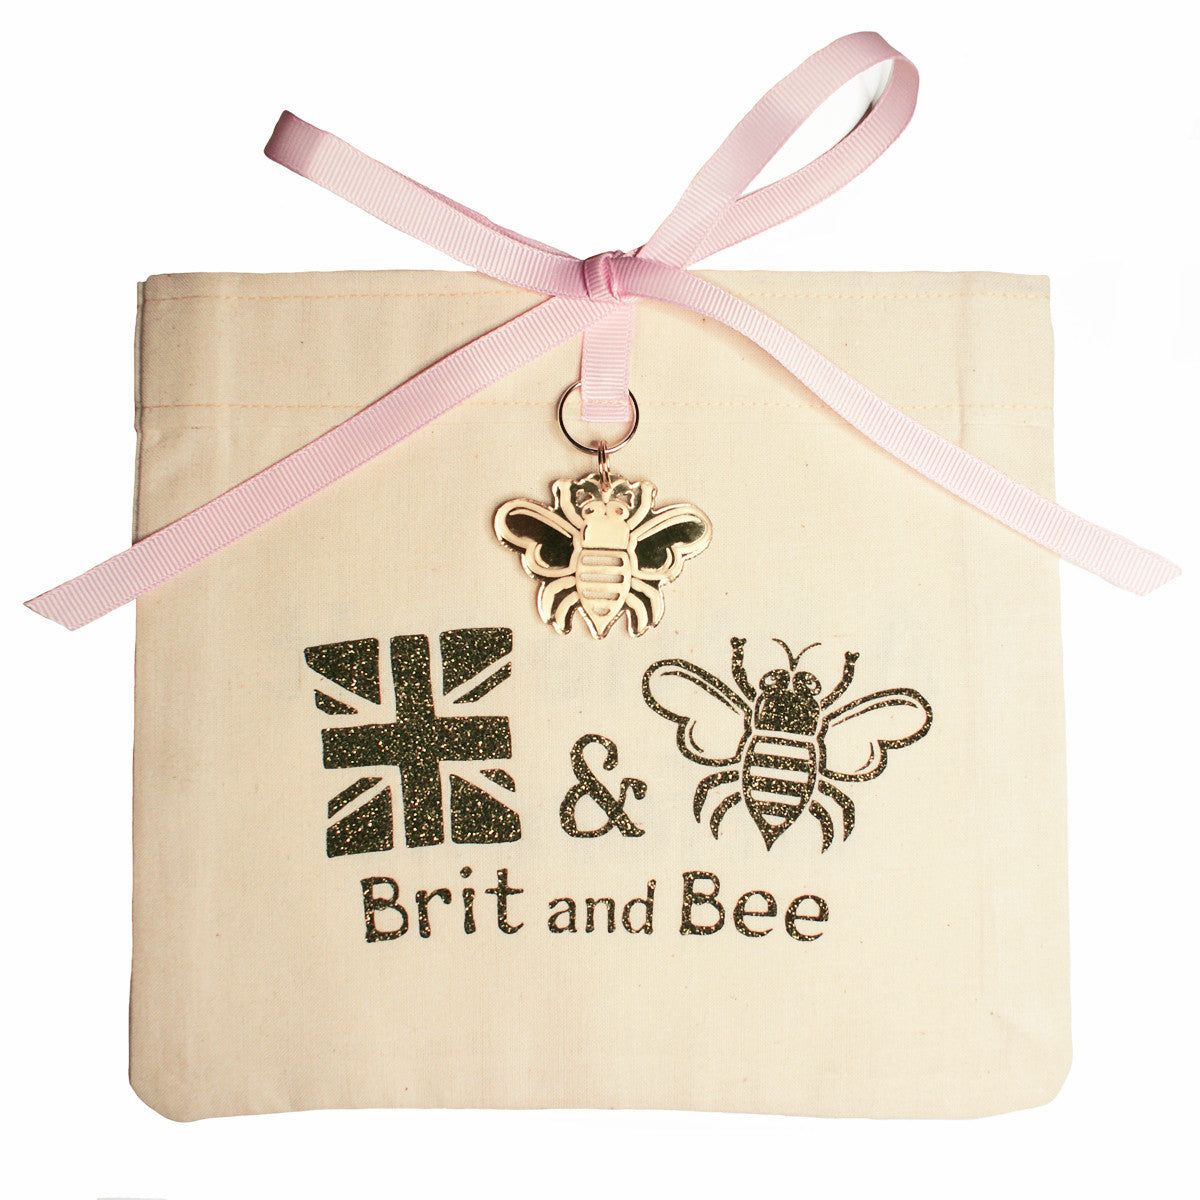 Brit and Bee Sorority Chapter Decal - Gamma Phi Beta